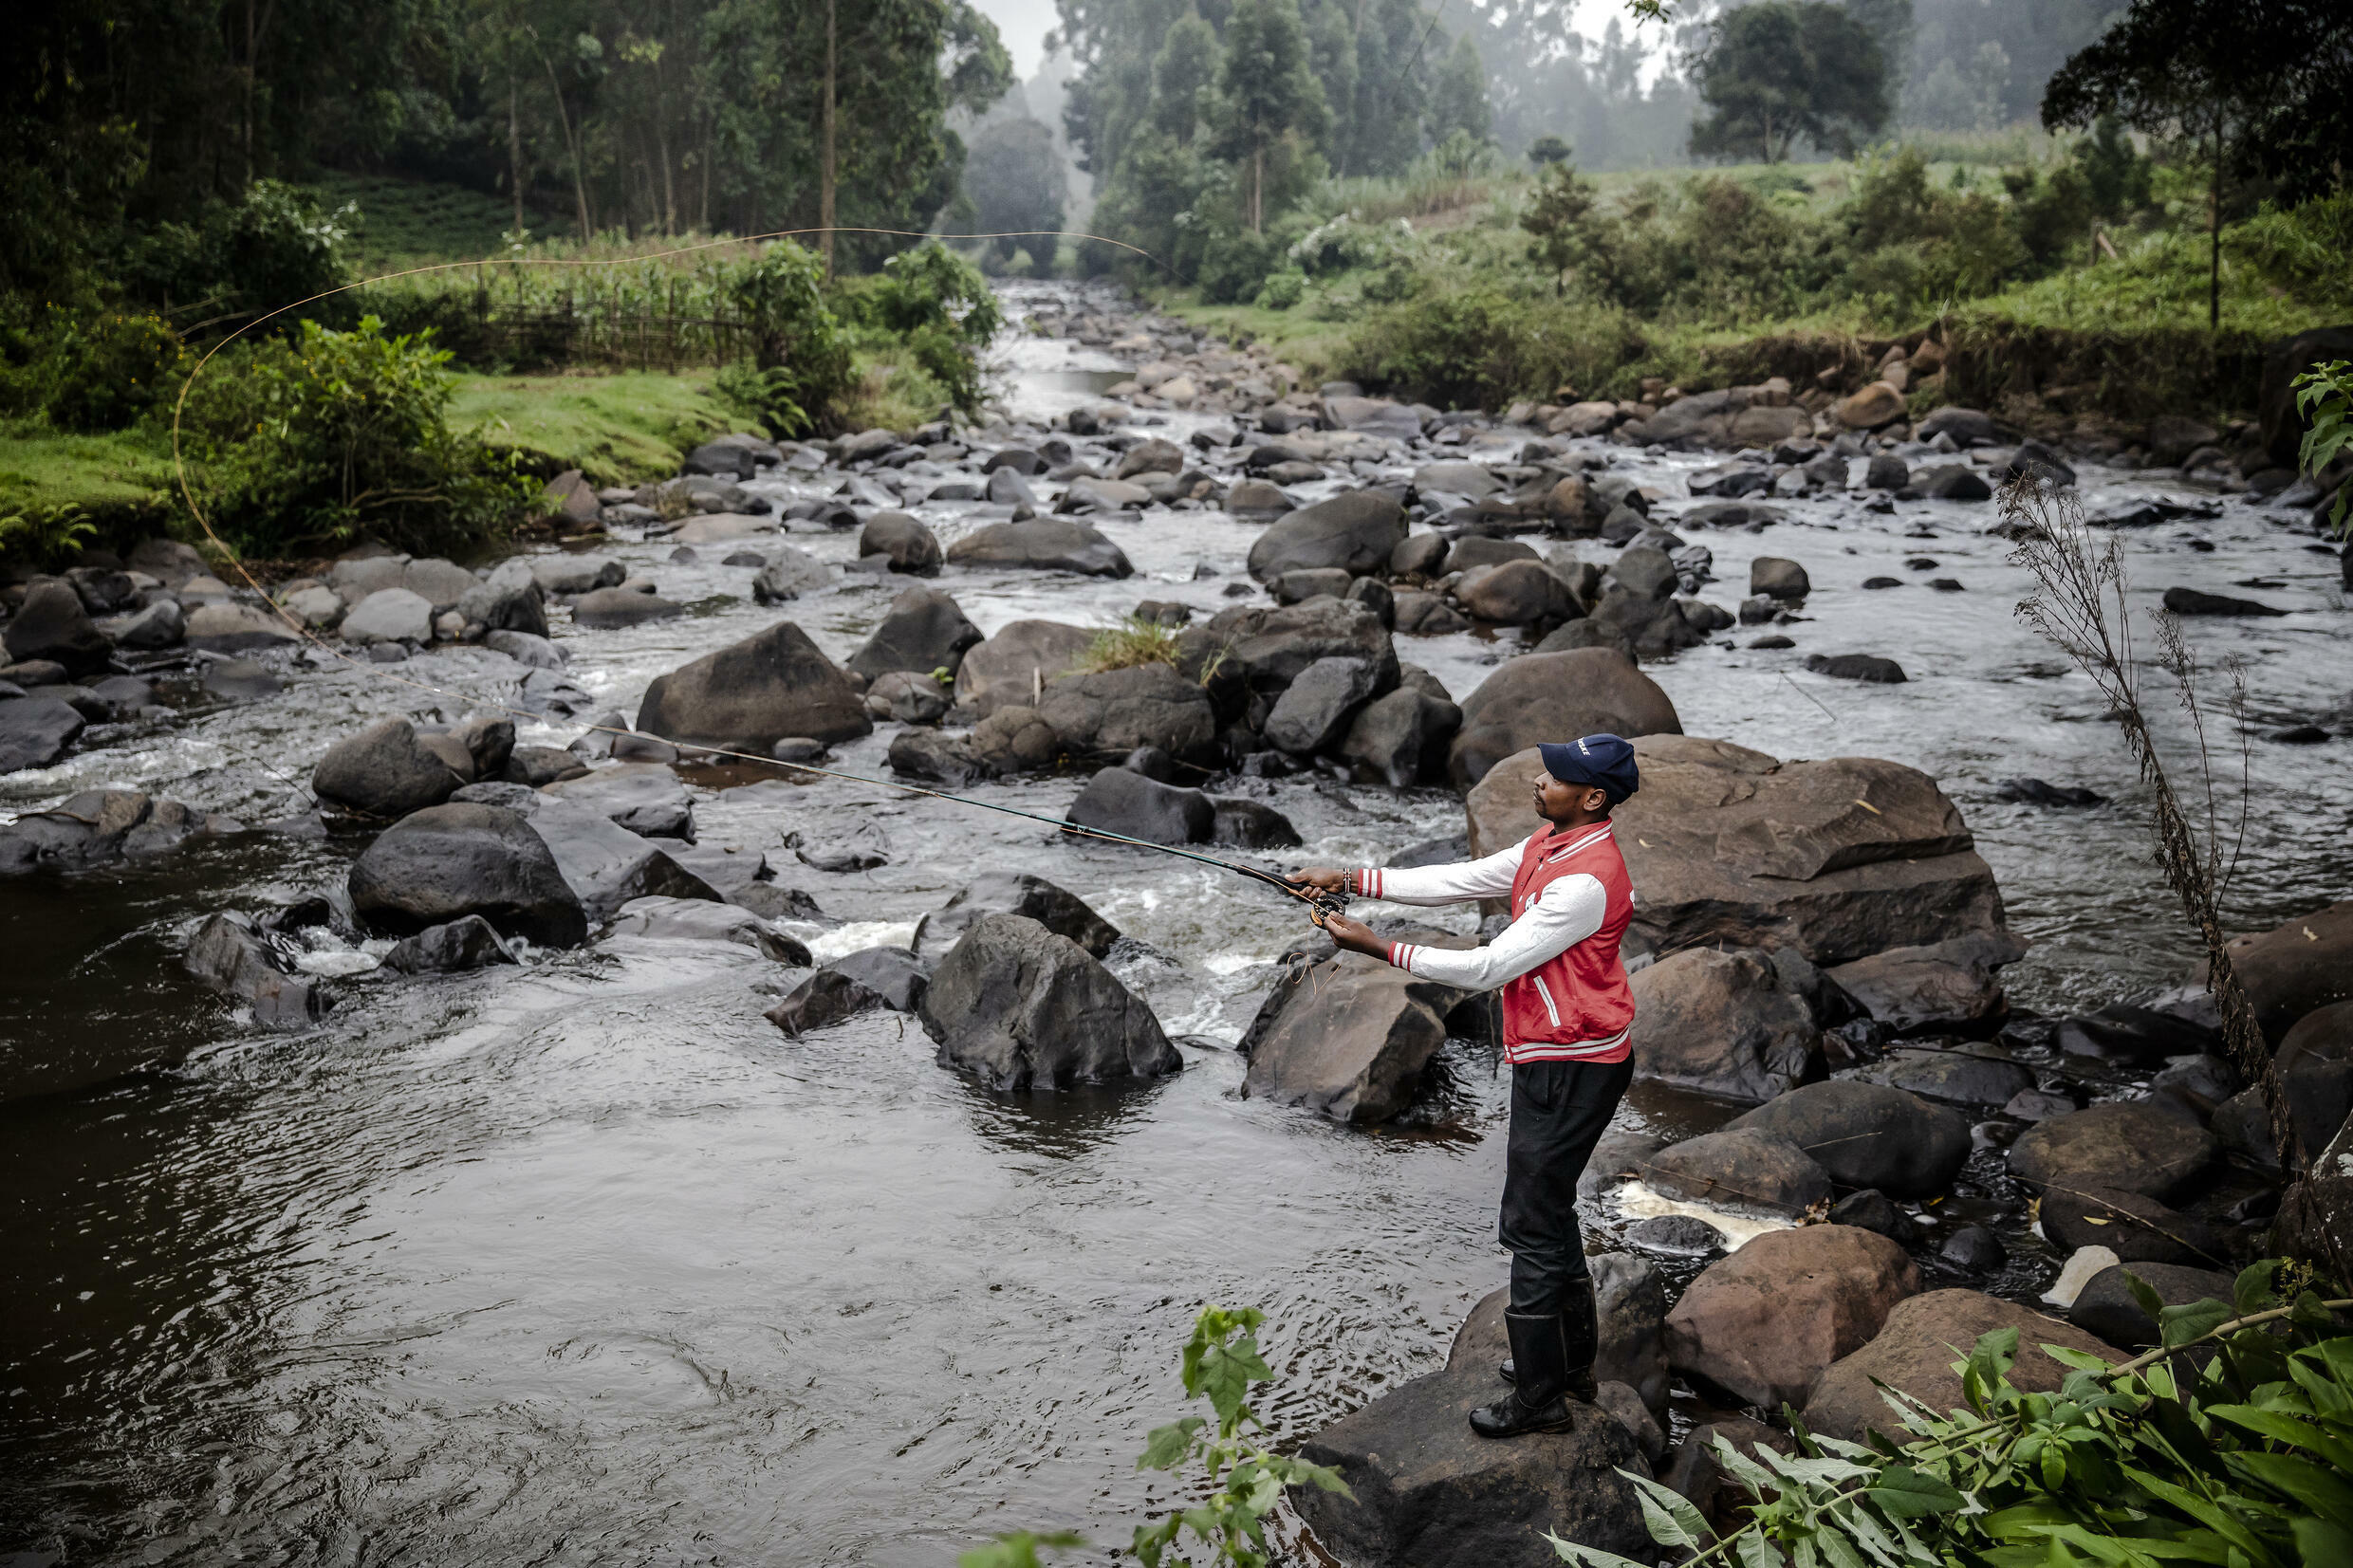 The fly fishing catch and release ethic is often not understood by Kenyans who fish for food